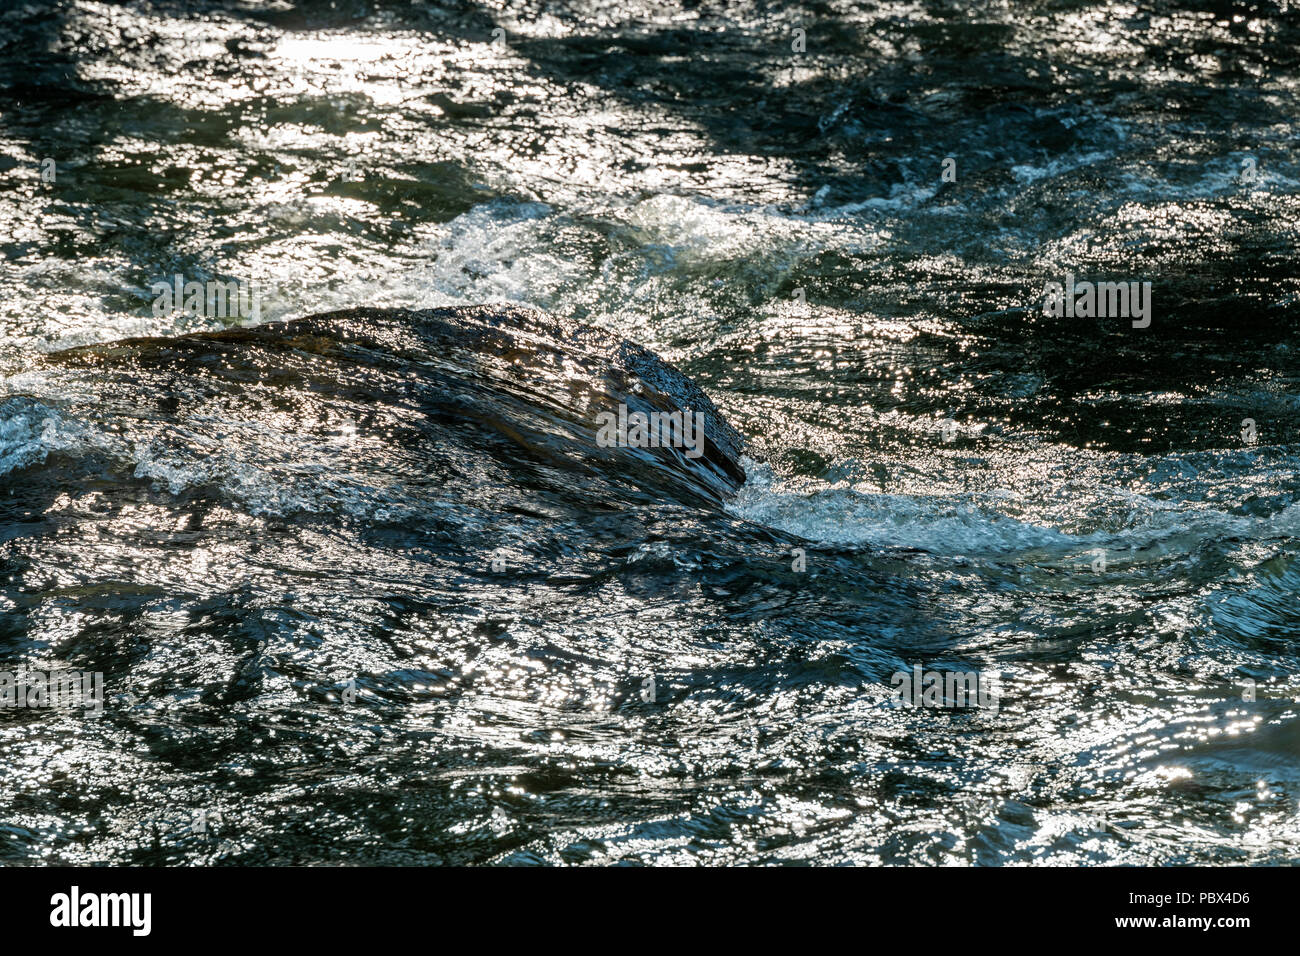 Close-up of backlit Arkansas River which runs through the downtown historic district of the small mountain town of Salida, Colorado, USA - Stock Image